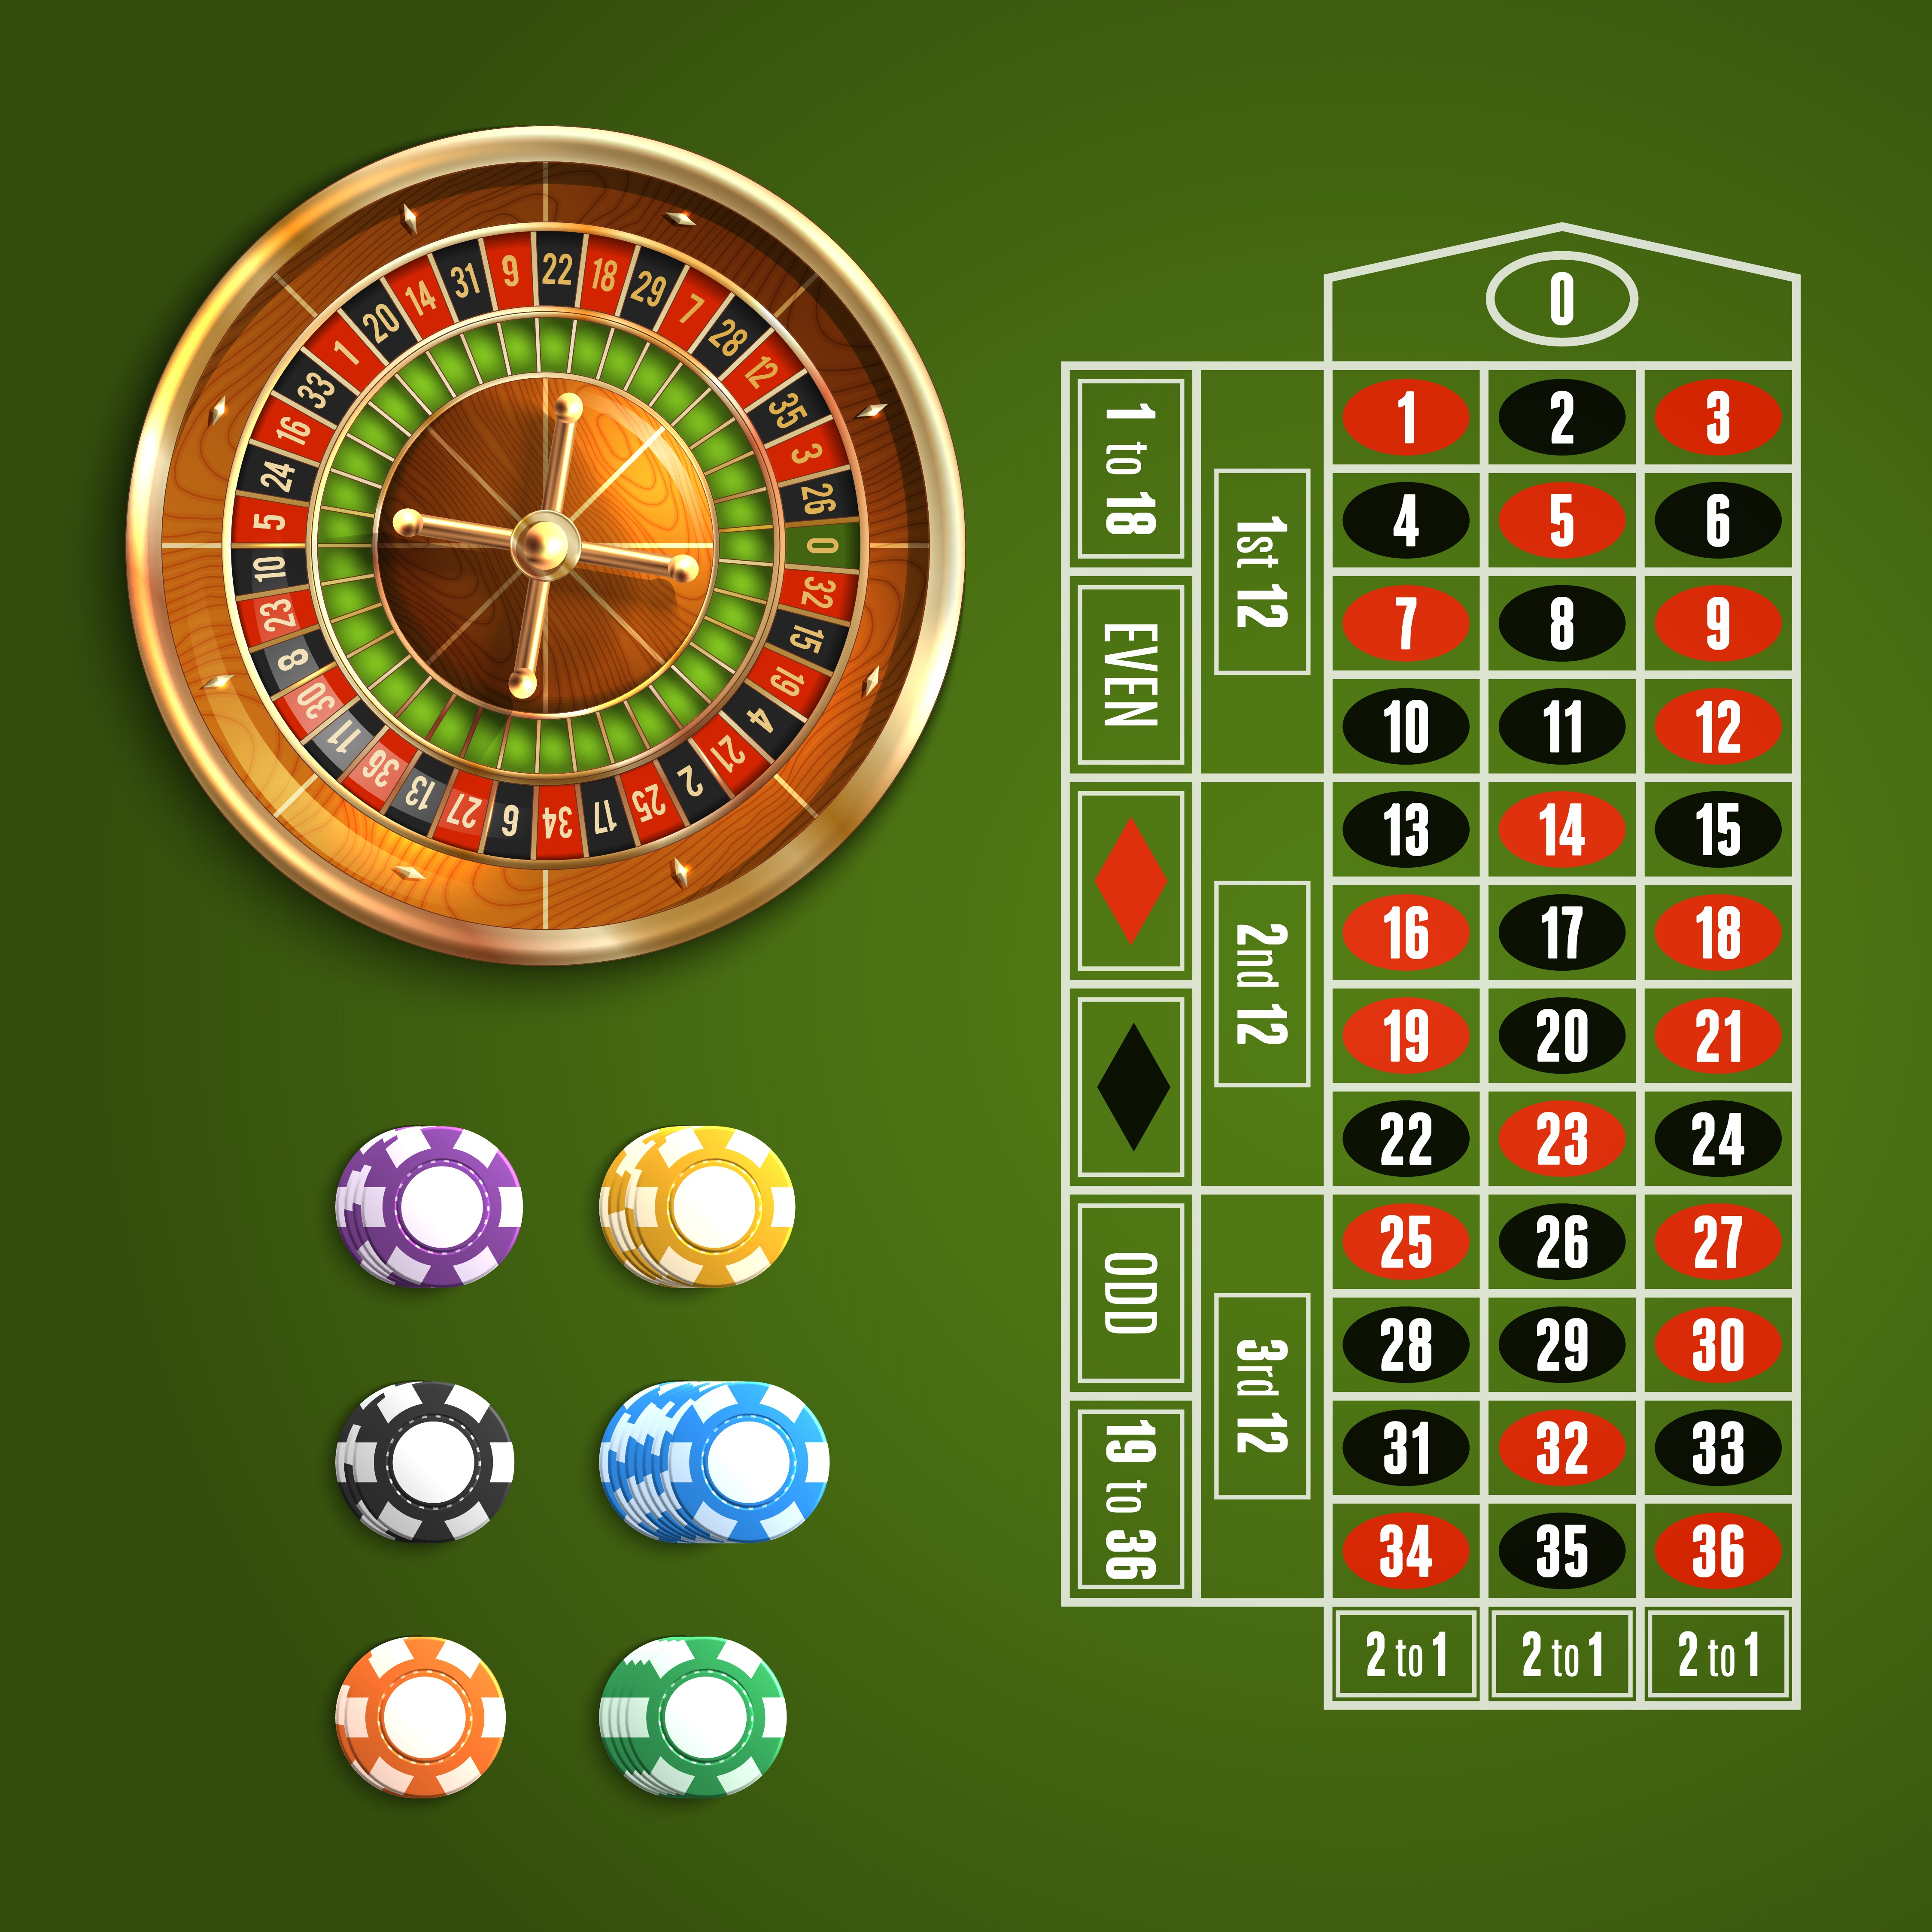 Roulette Betting Table